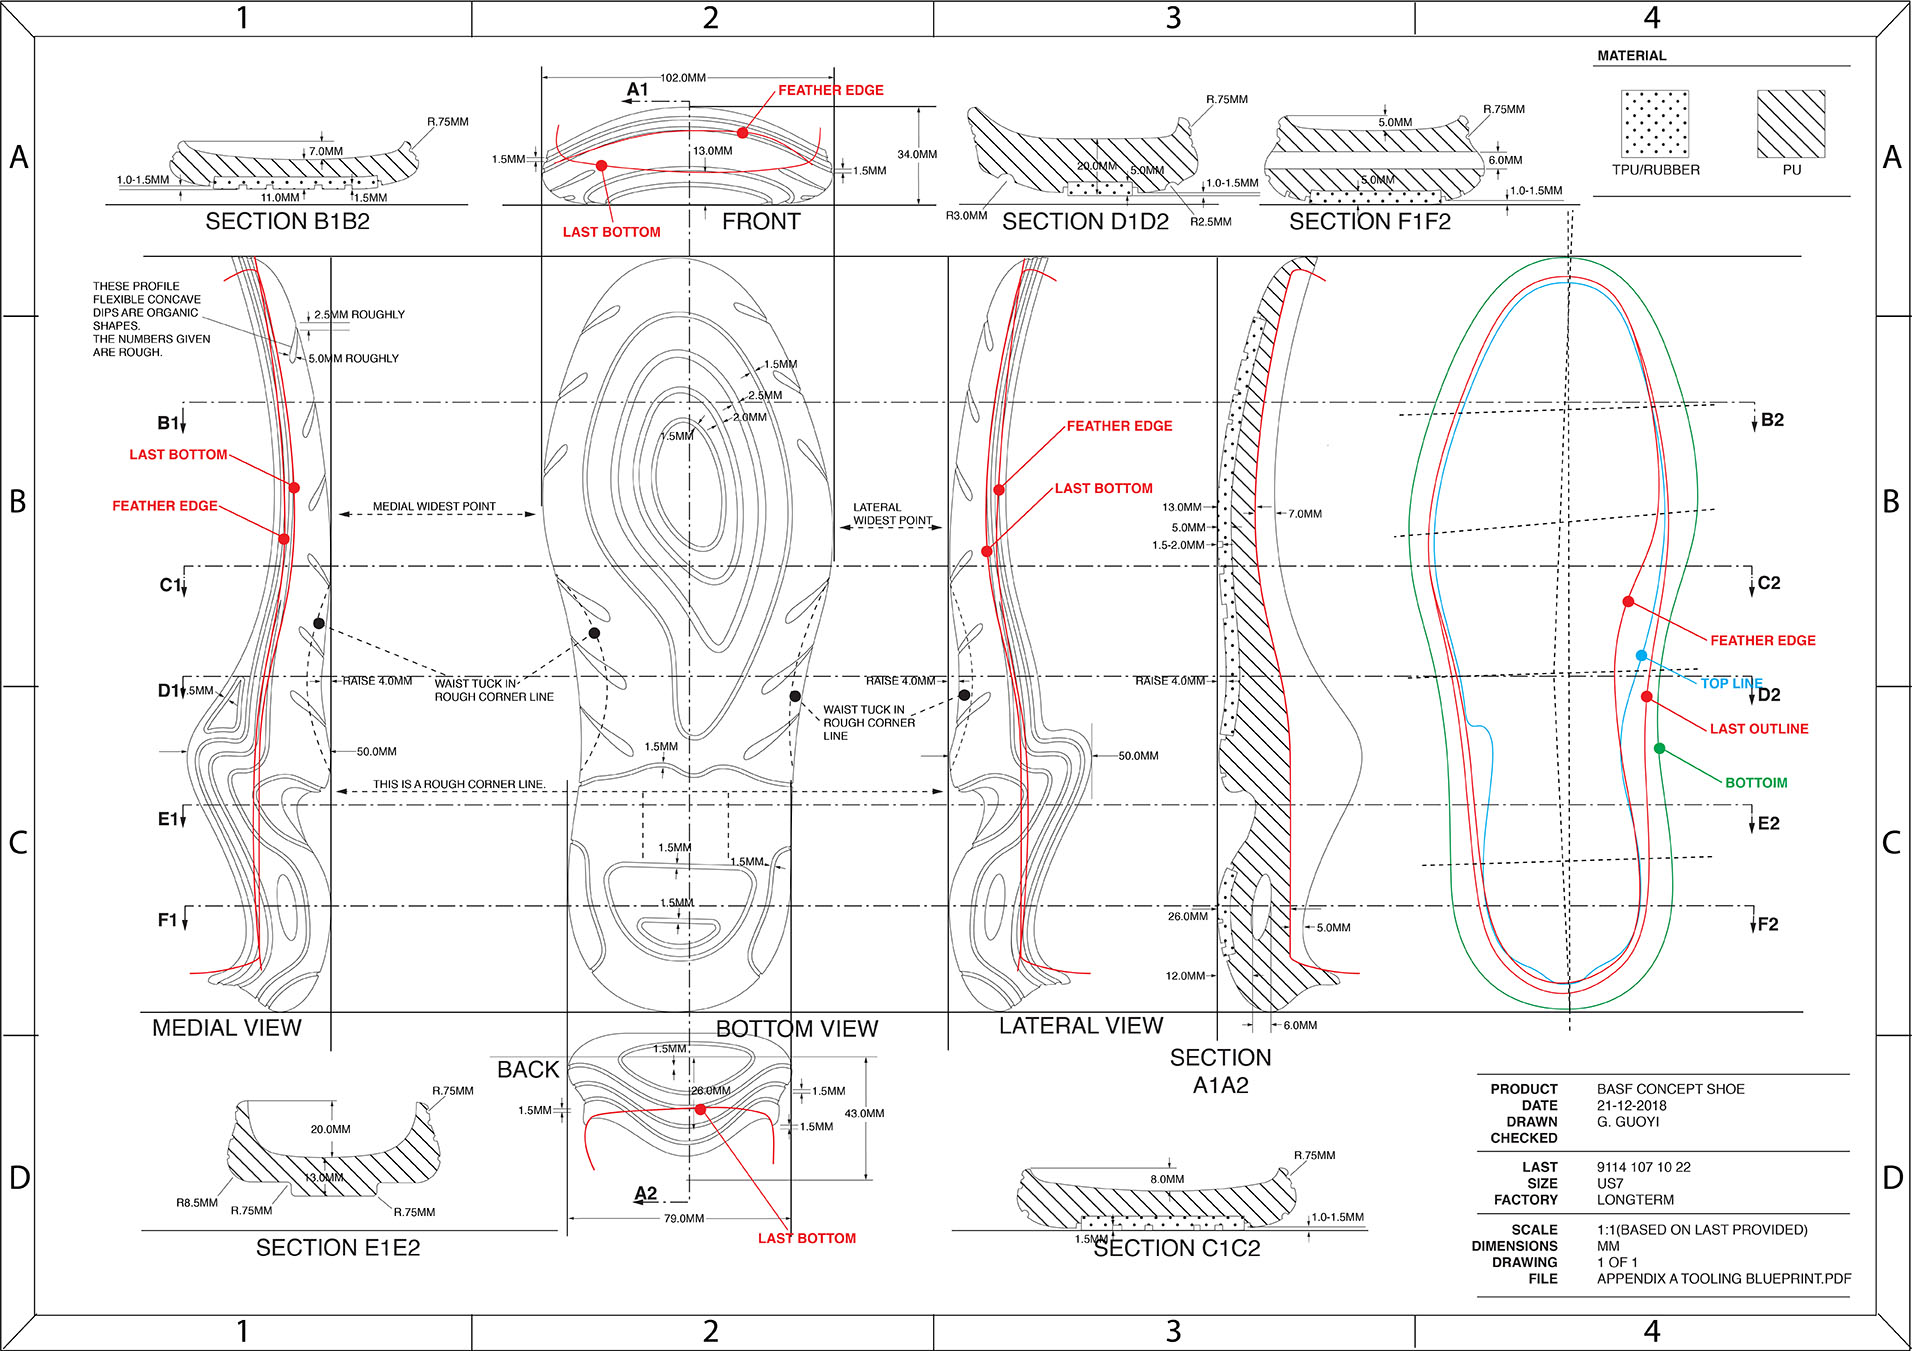 APPENDIX A TOOLING BLUEPRINT-01.jpg